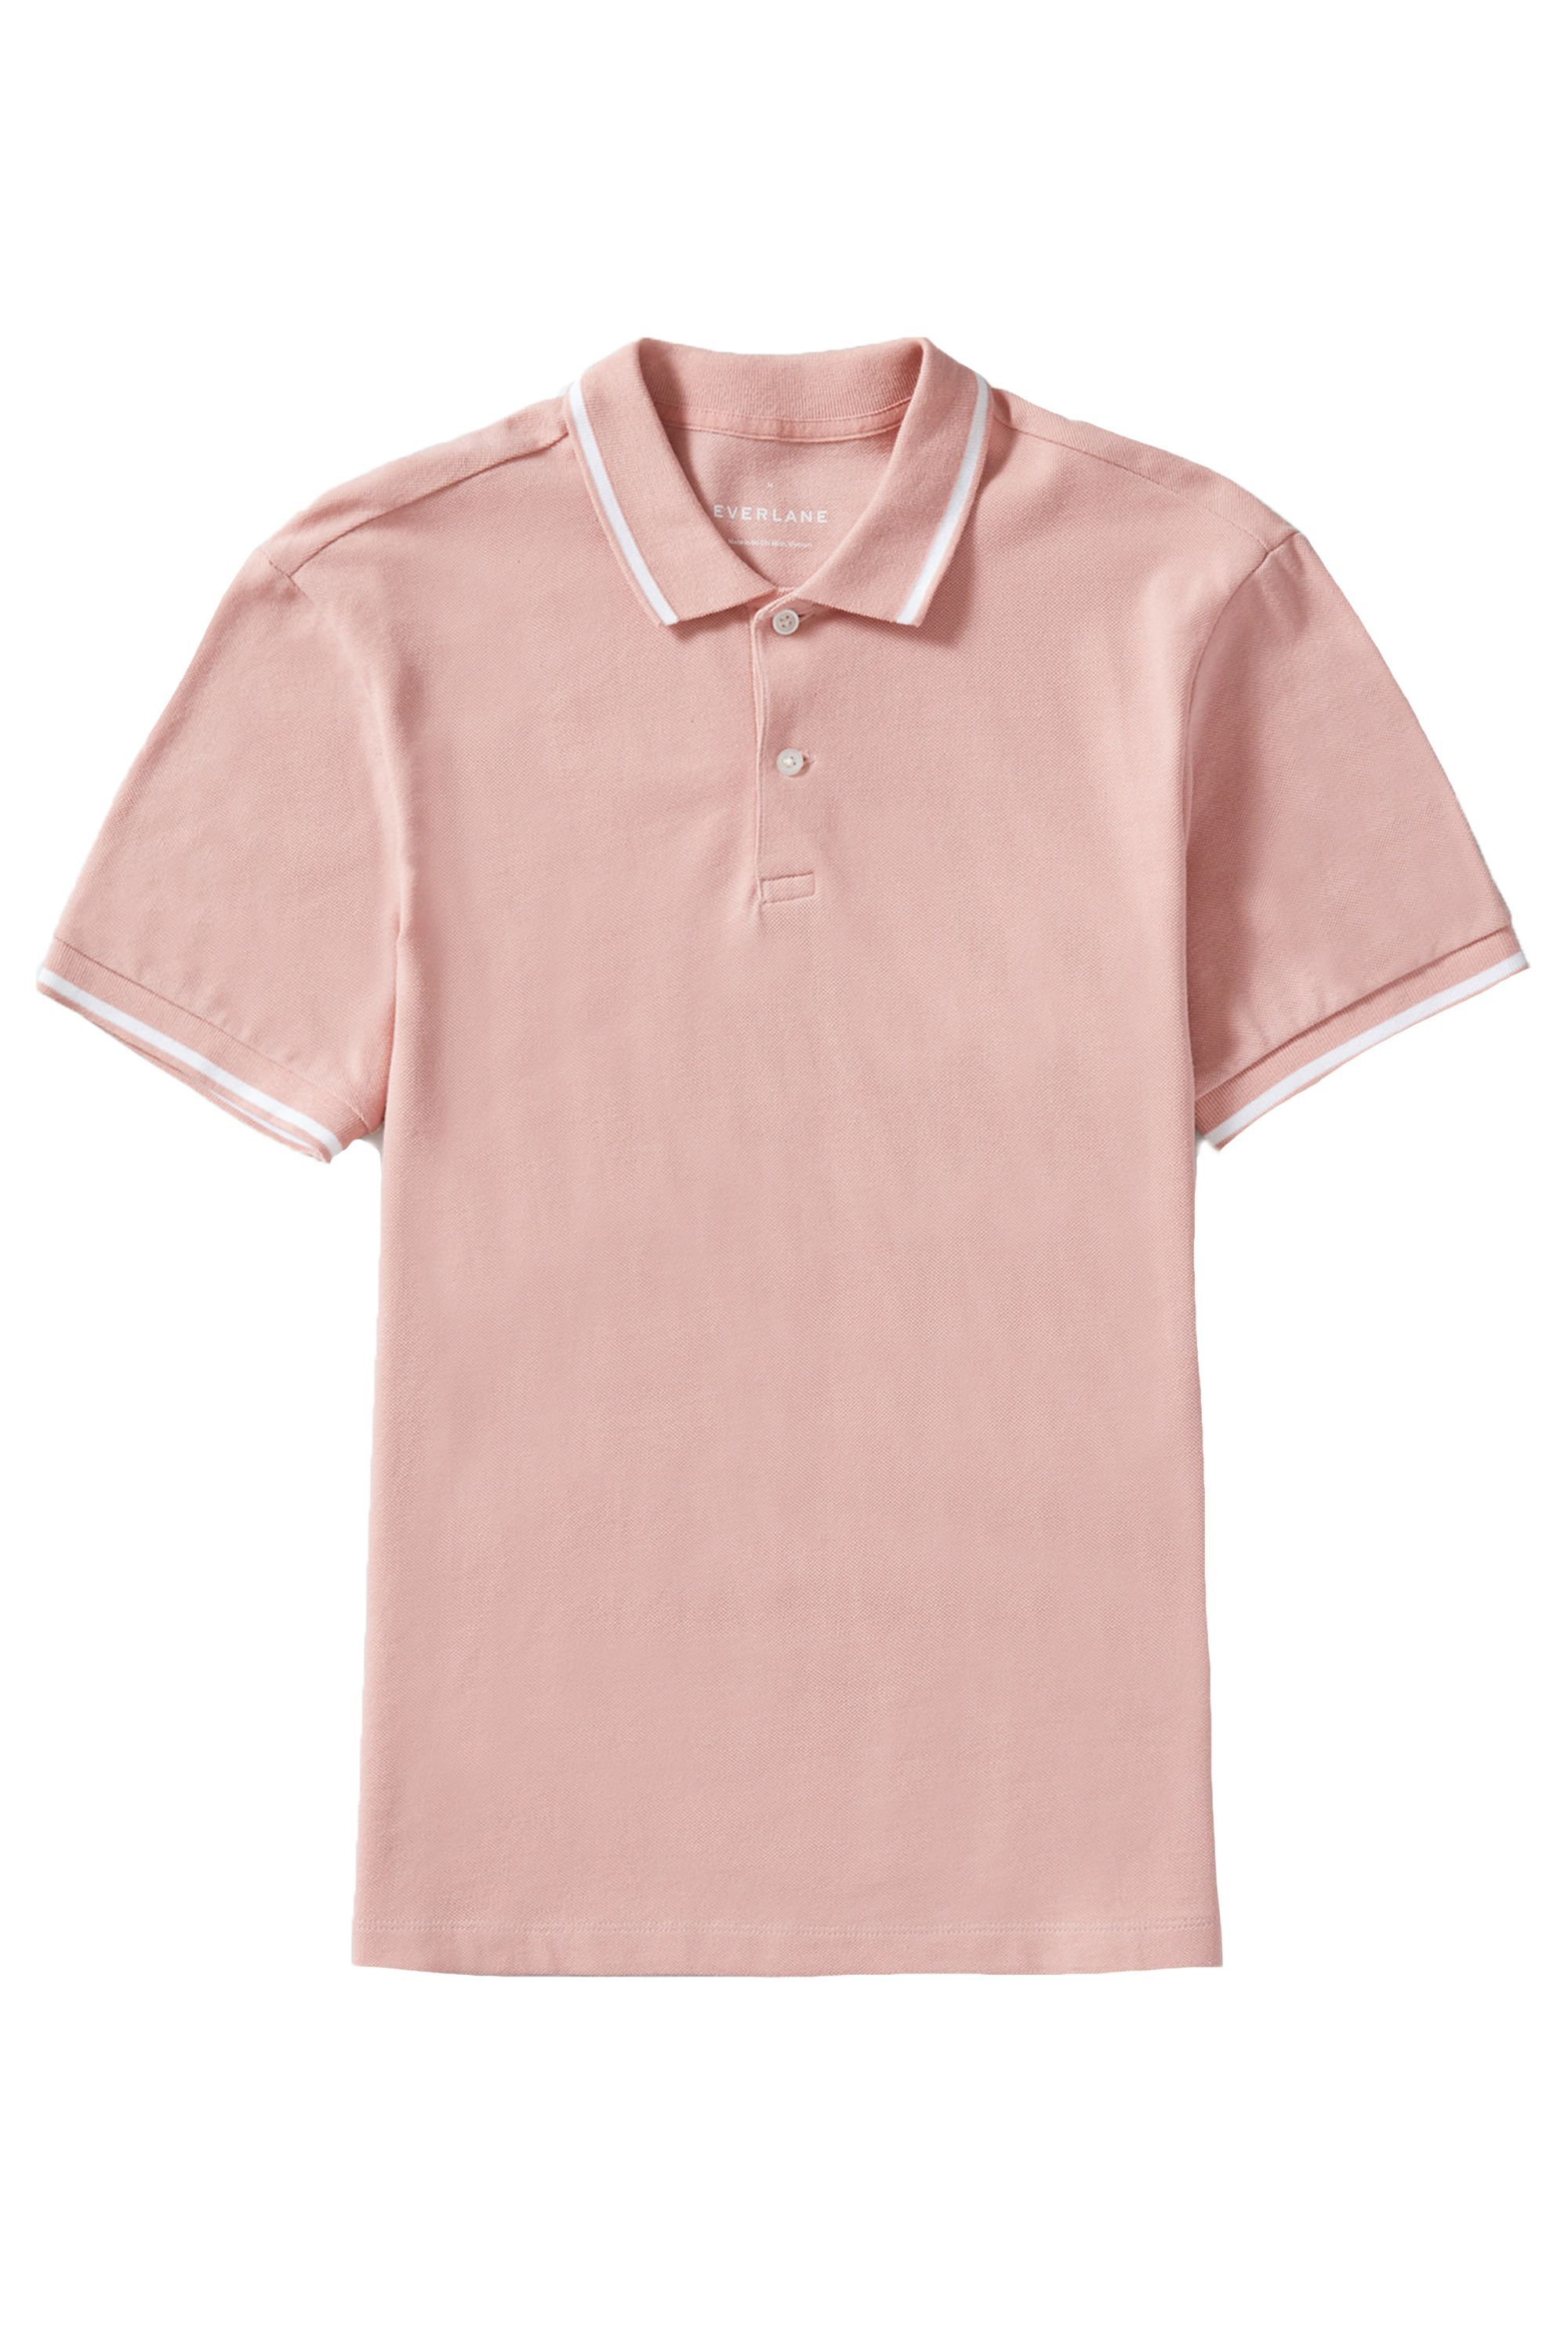 The Pique Polo Shirt Everlane everlane.com $35.00 SHOP NOW It's a scientific fact that dads look best in pink.